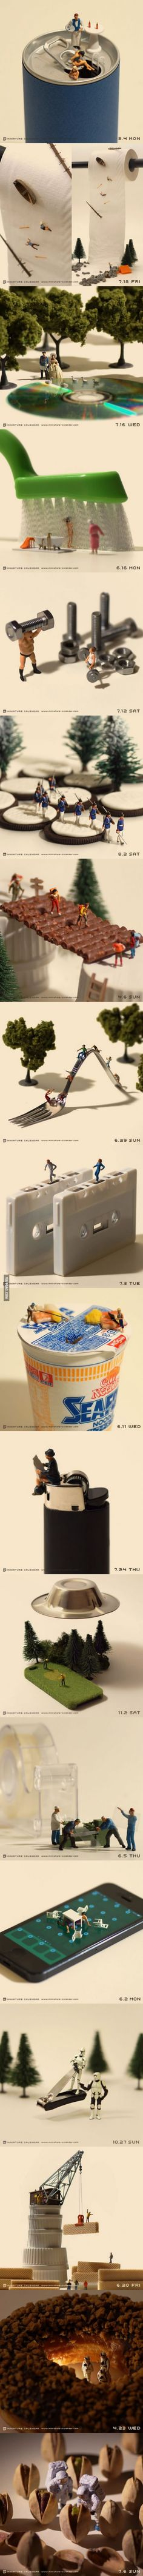 Miniature photography Tanaka Tatsuya combined little people and everyday objects to create an art like never seen before. Miniature Photography, Art Photography, Japanese Photography, Photography Courses, Photo Macro, Miniature Calendar, Everyday Objects, Art Plastique, Little People